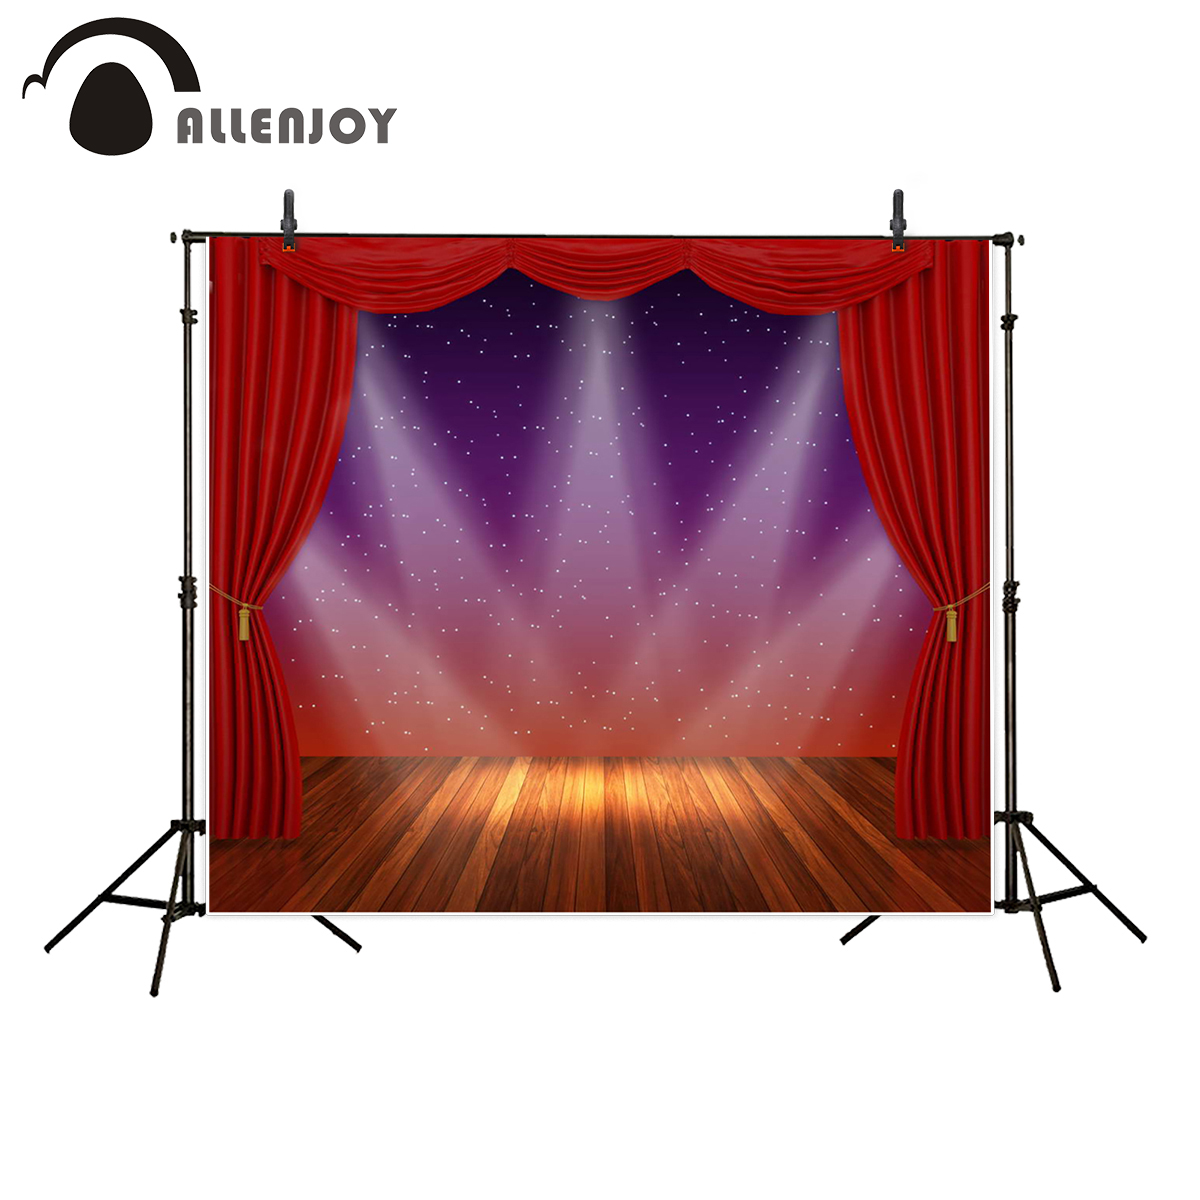 Cheap black stage curtains - Allenjoy Photography Backdrops Stage Lighting Curtain Red Background Photography Backdrop For Photo Studio 200 300cm